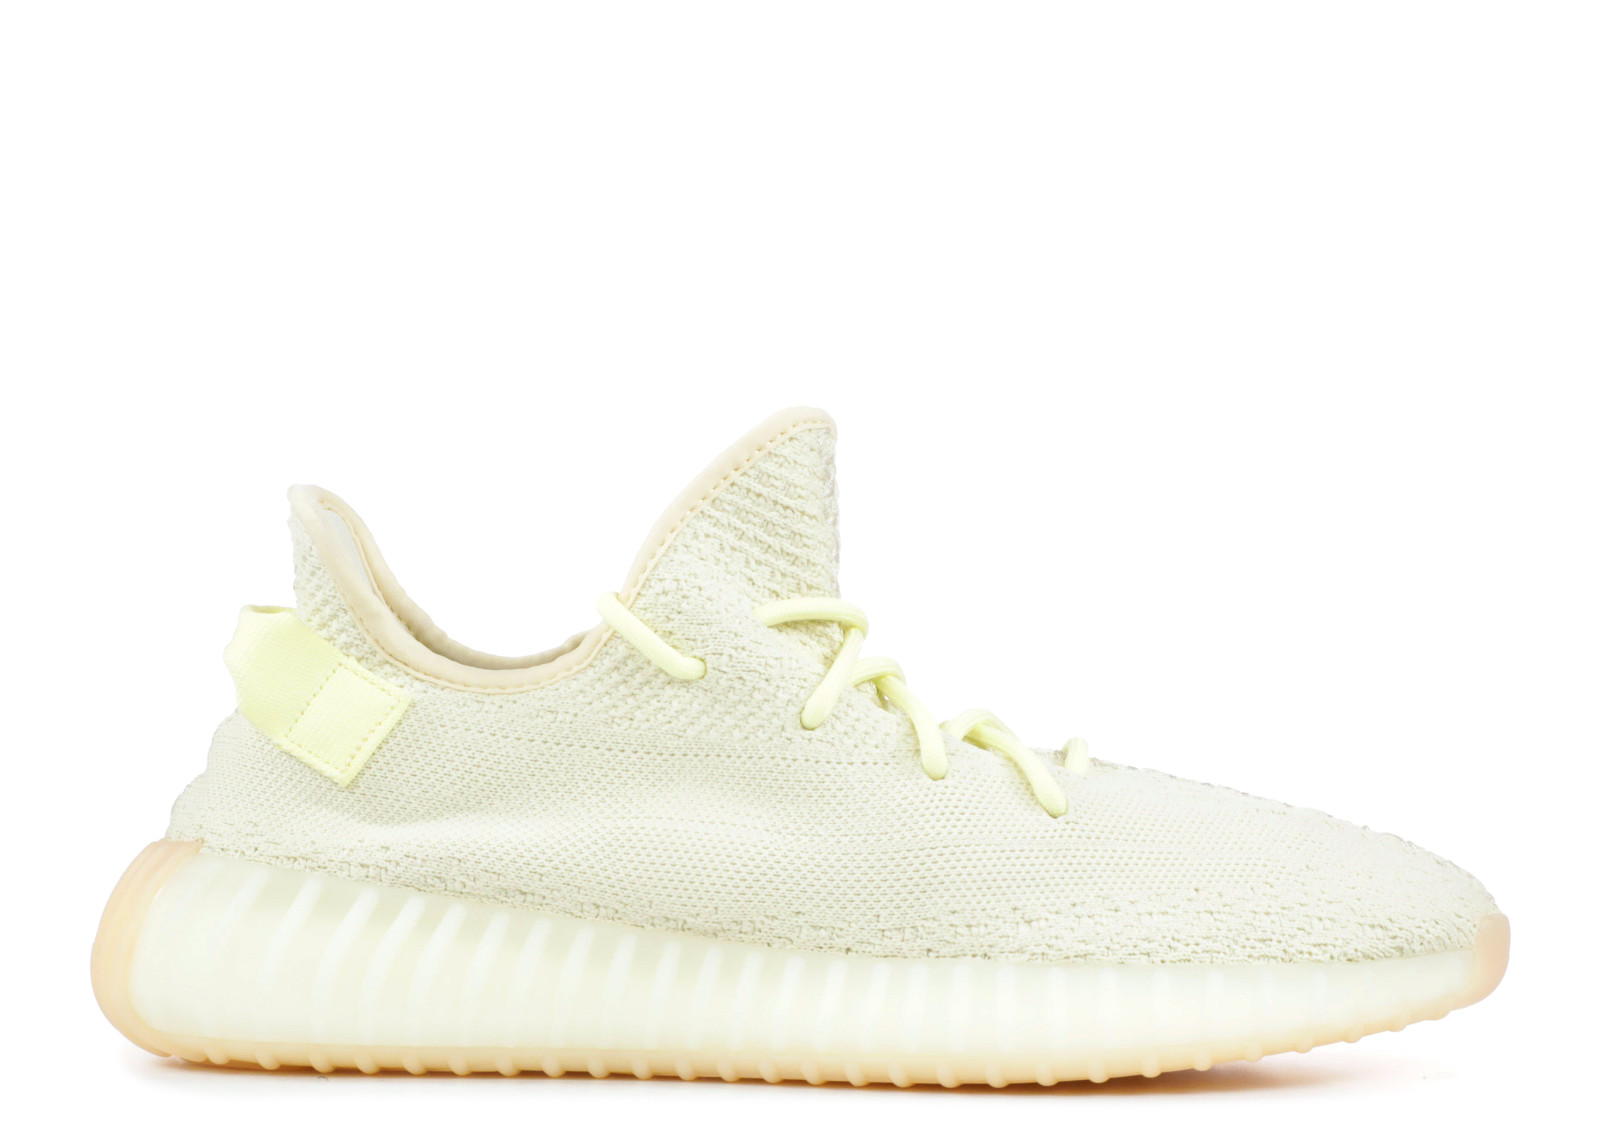 buy popular f1bad ff072 Details about ADIDAS YEEZY BOOST 350 V2 'BUTTER' - F36980